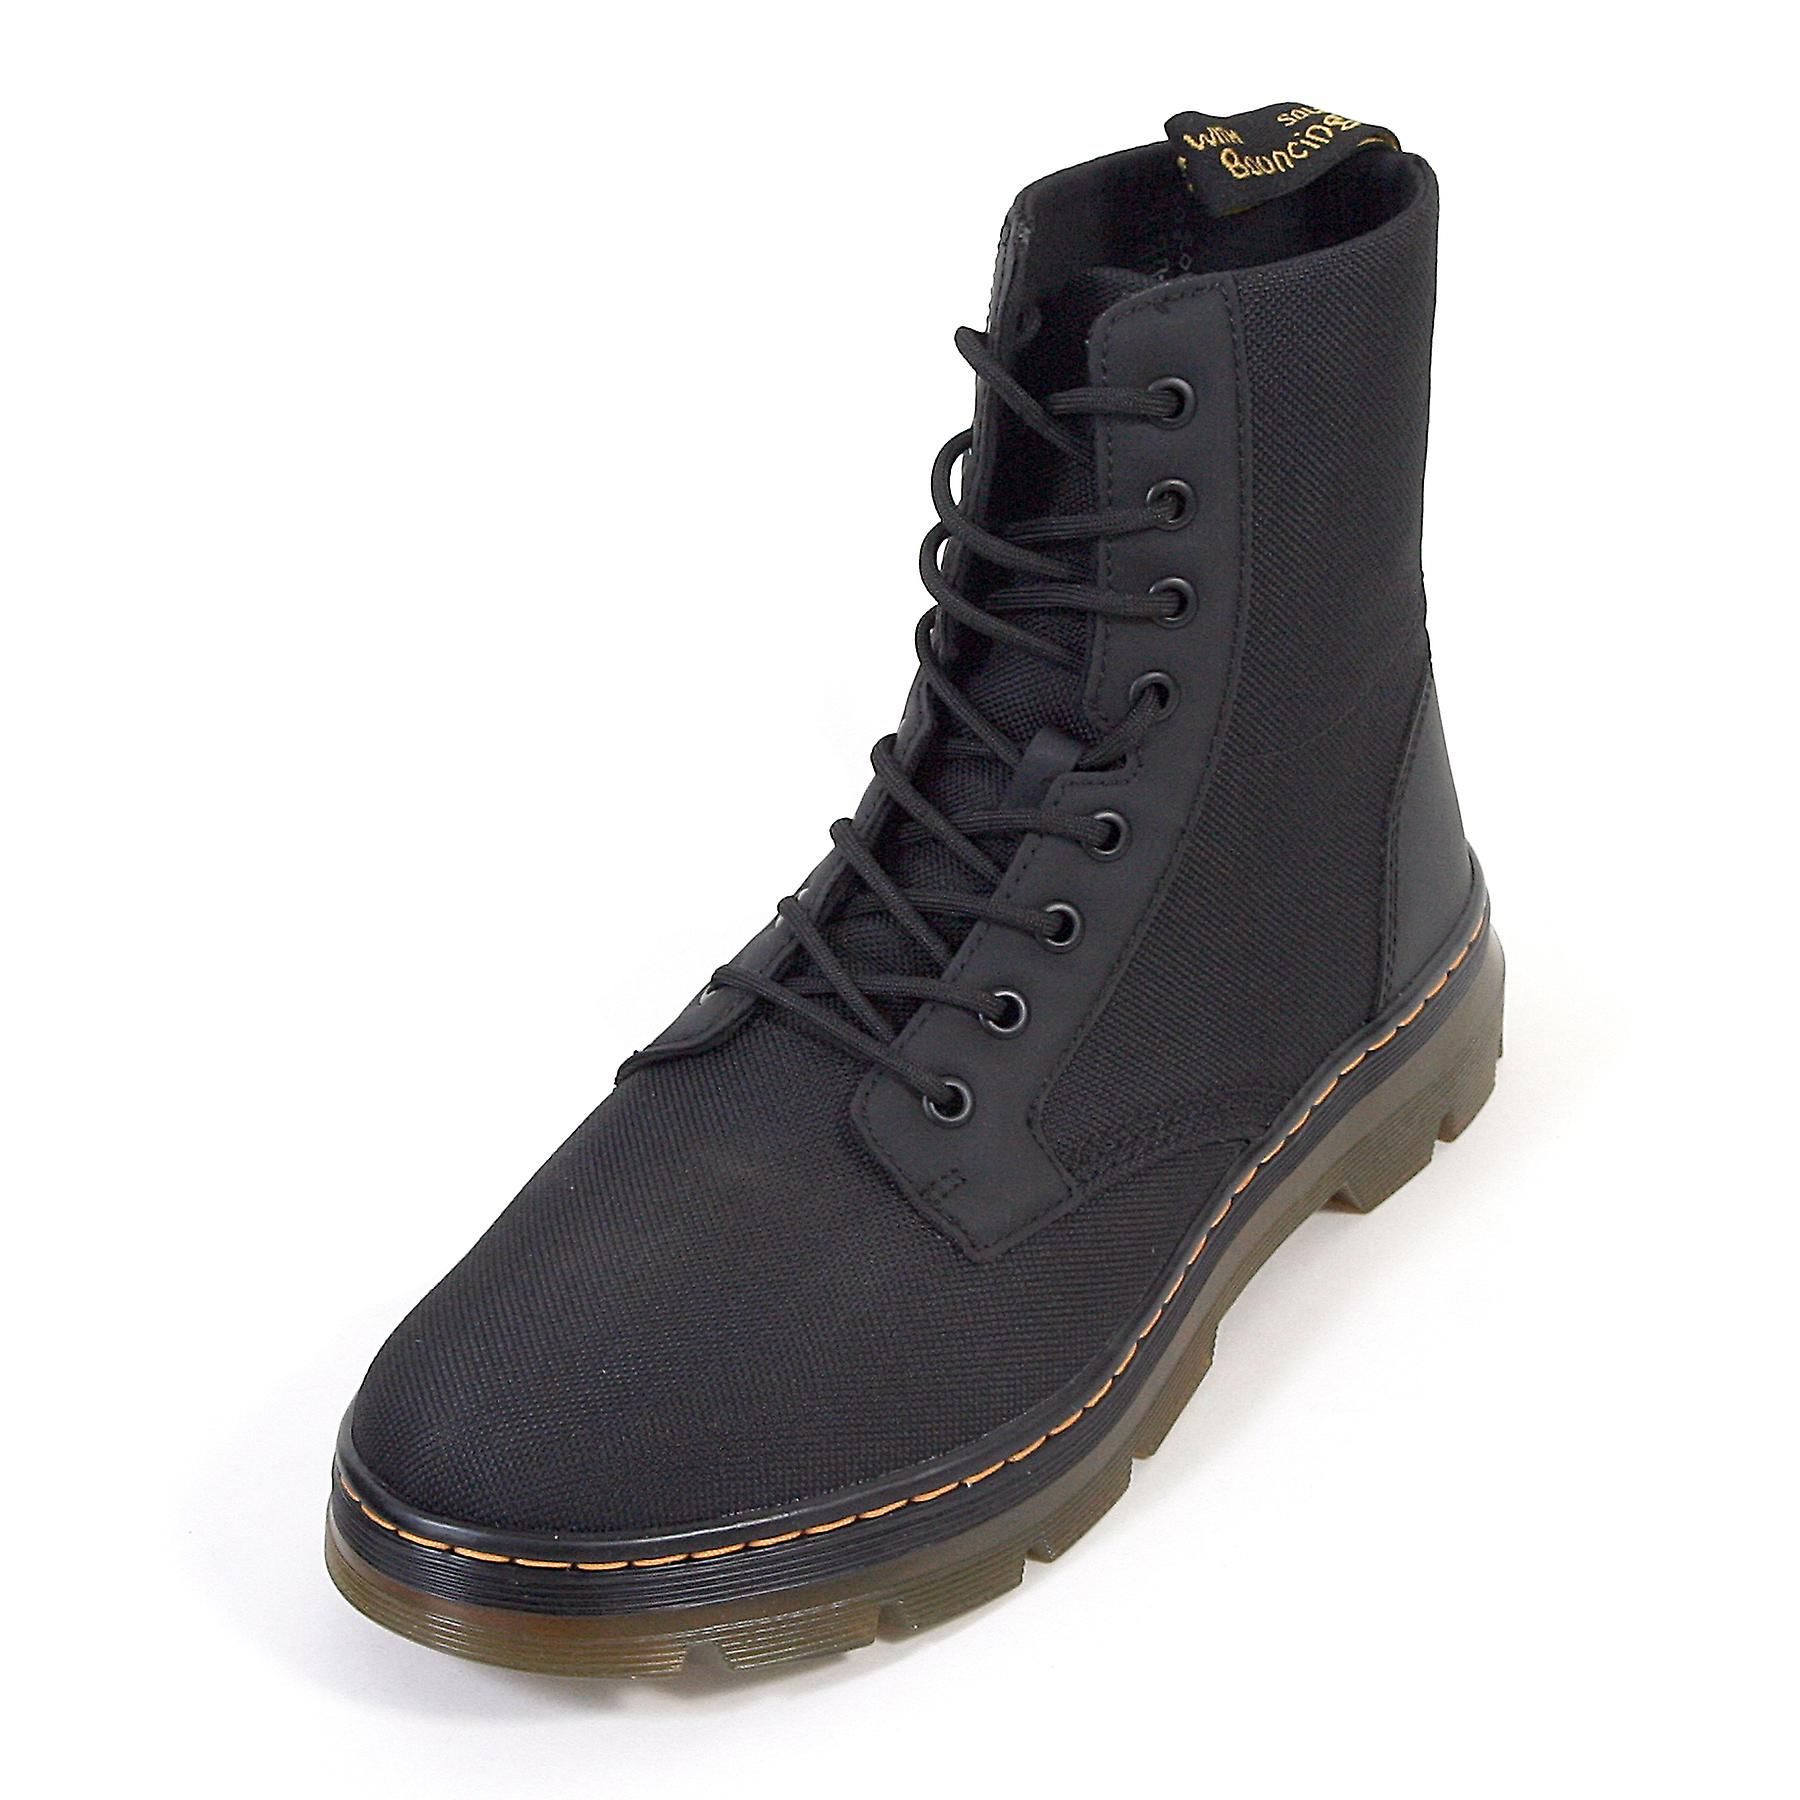 798e7084fff Dr Martens Men's Tract Combs Fold-Down Nylon Lace-Up Boot Black